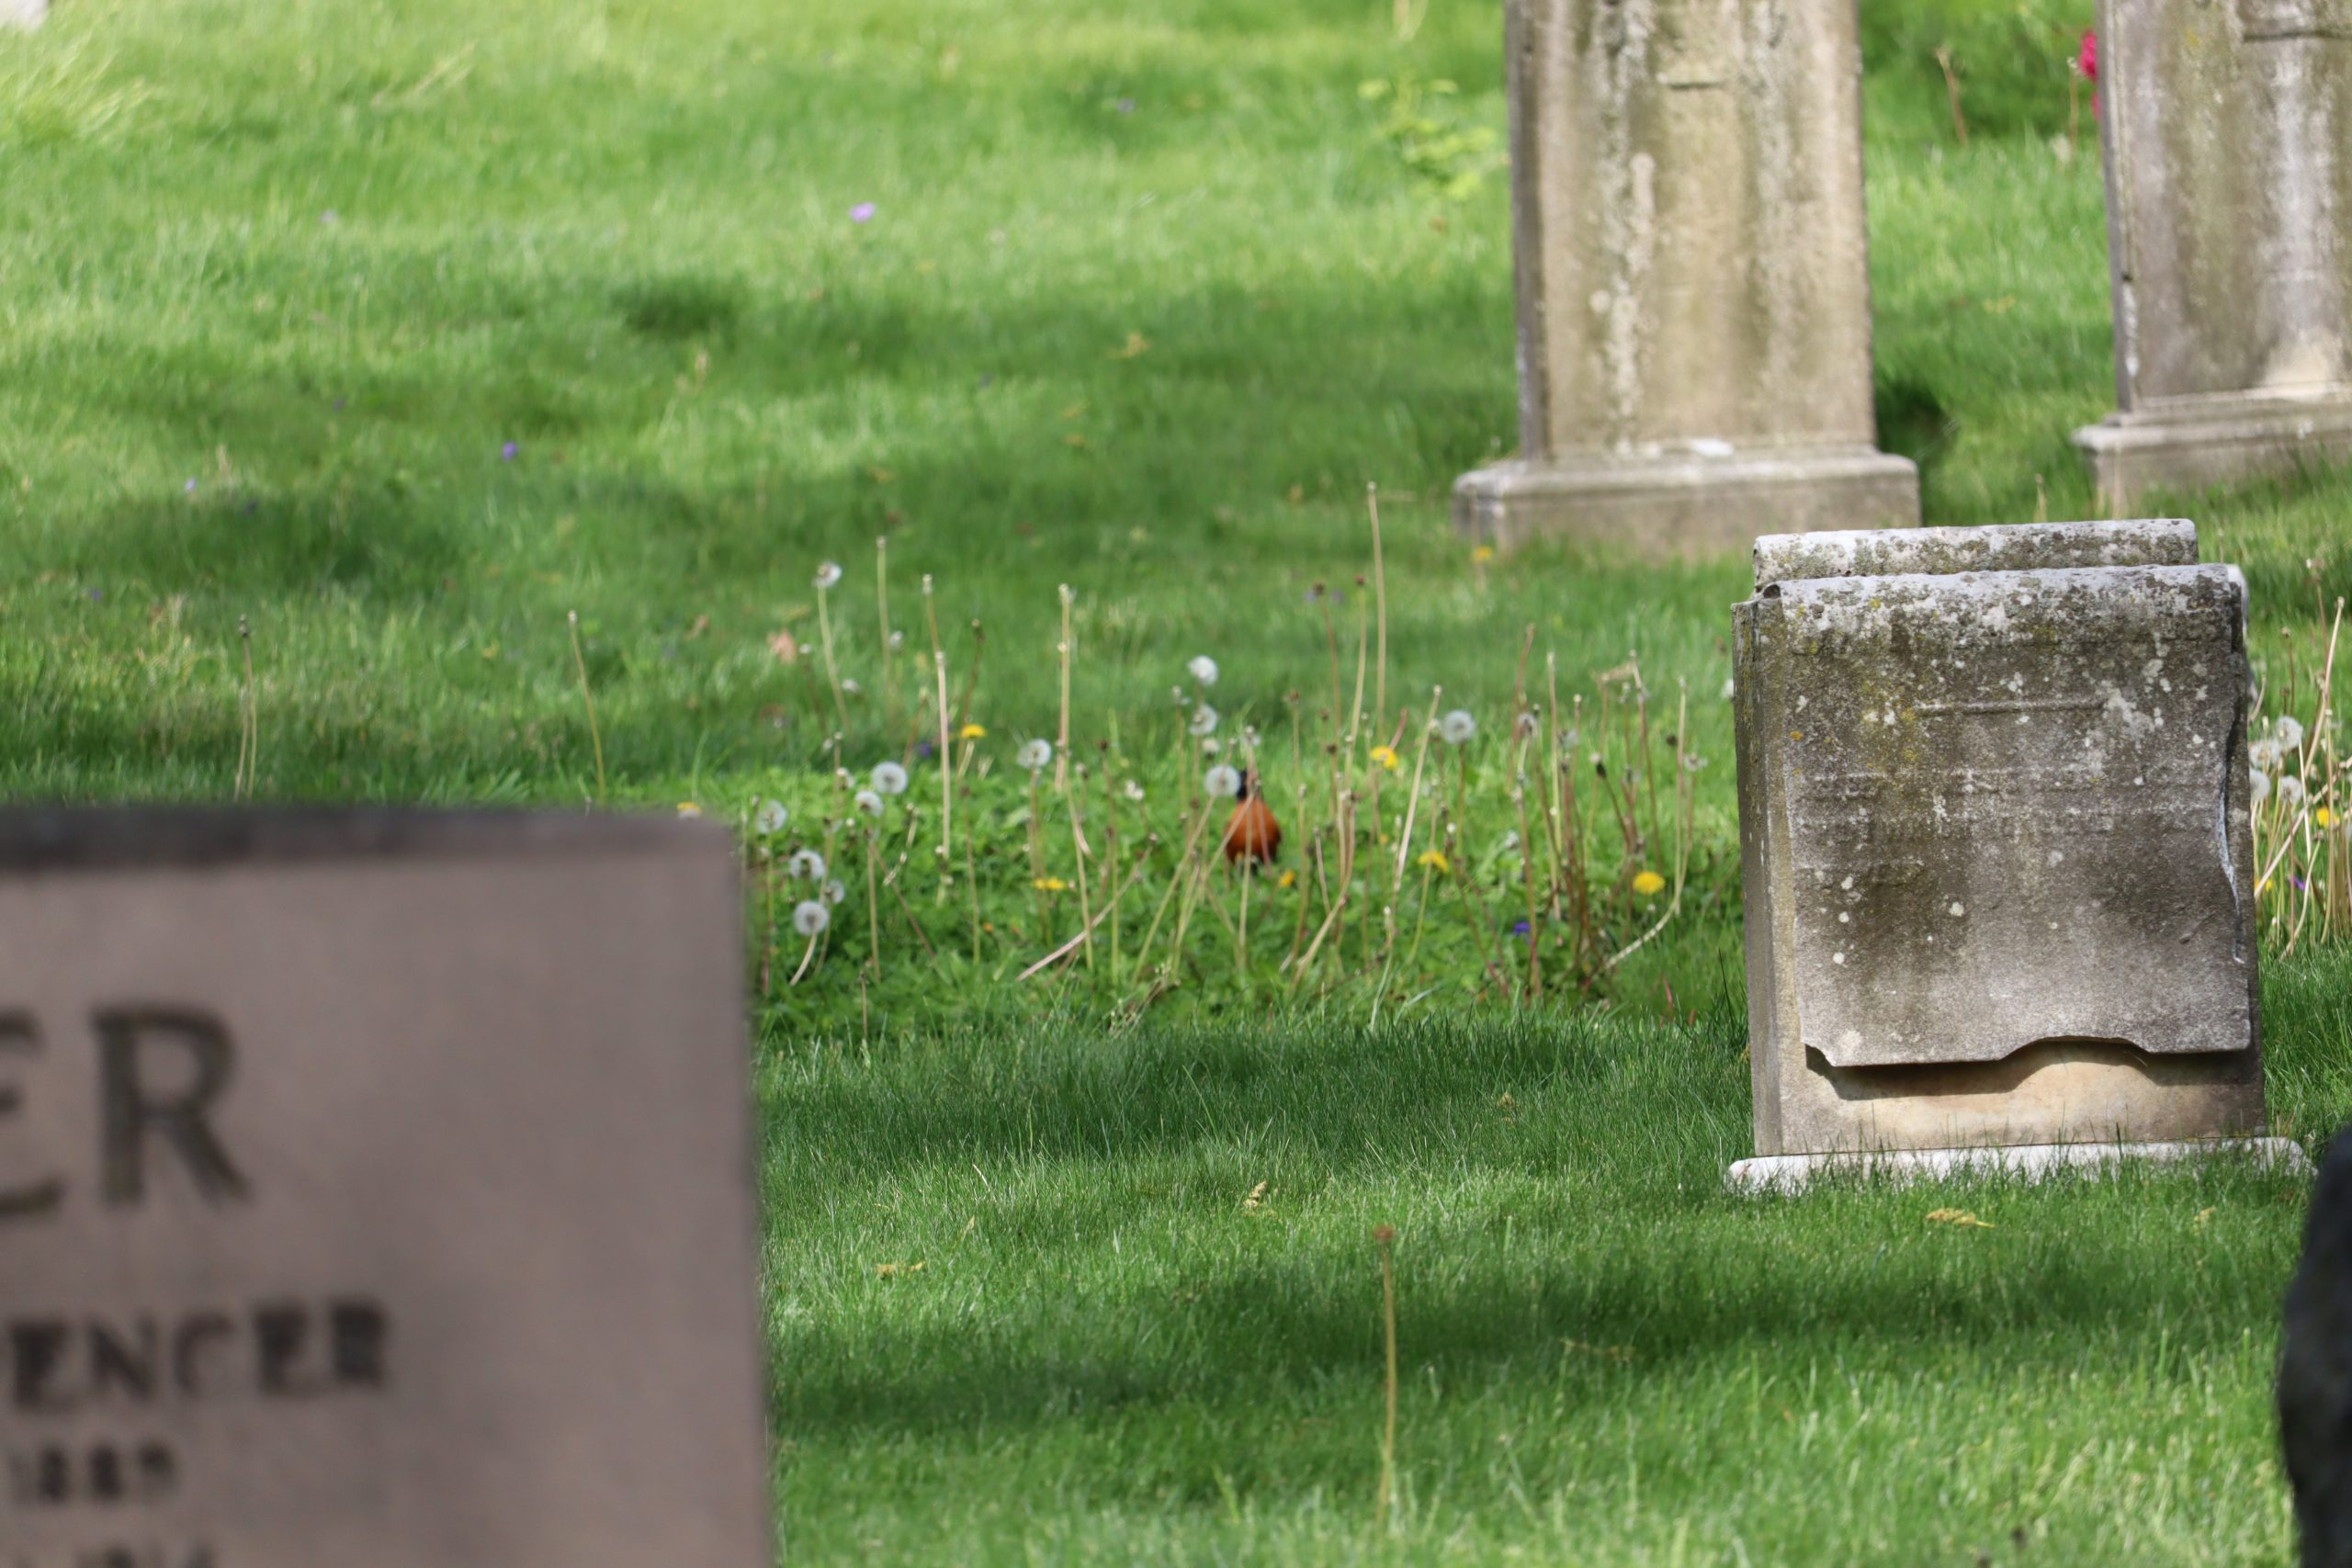 It's not always autofocus ruining the shot. Here the tombstone is in blurry and the bird is in focus.